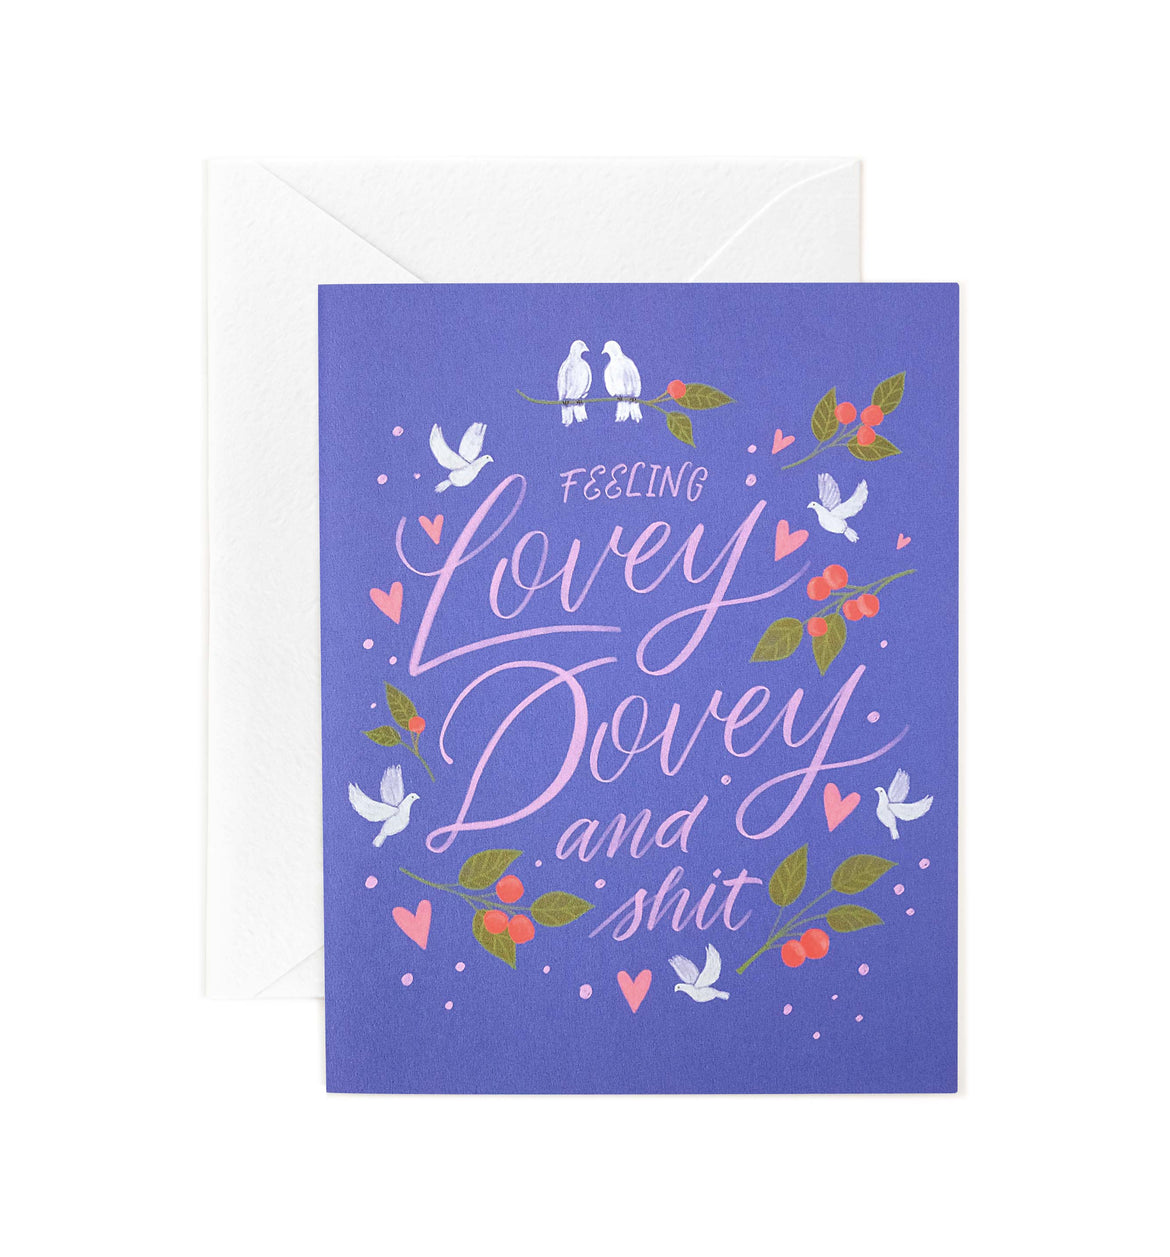 Lovey Dovey Card